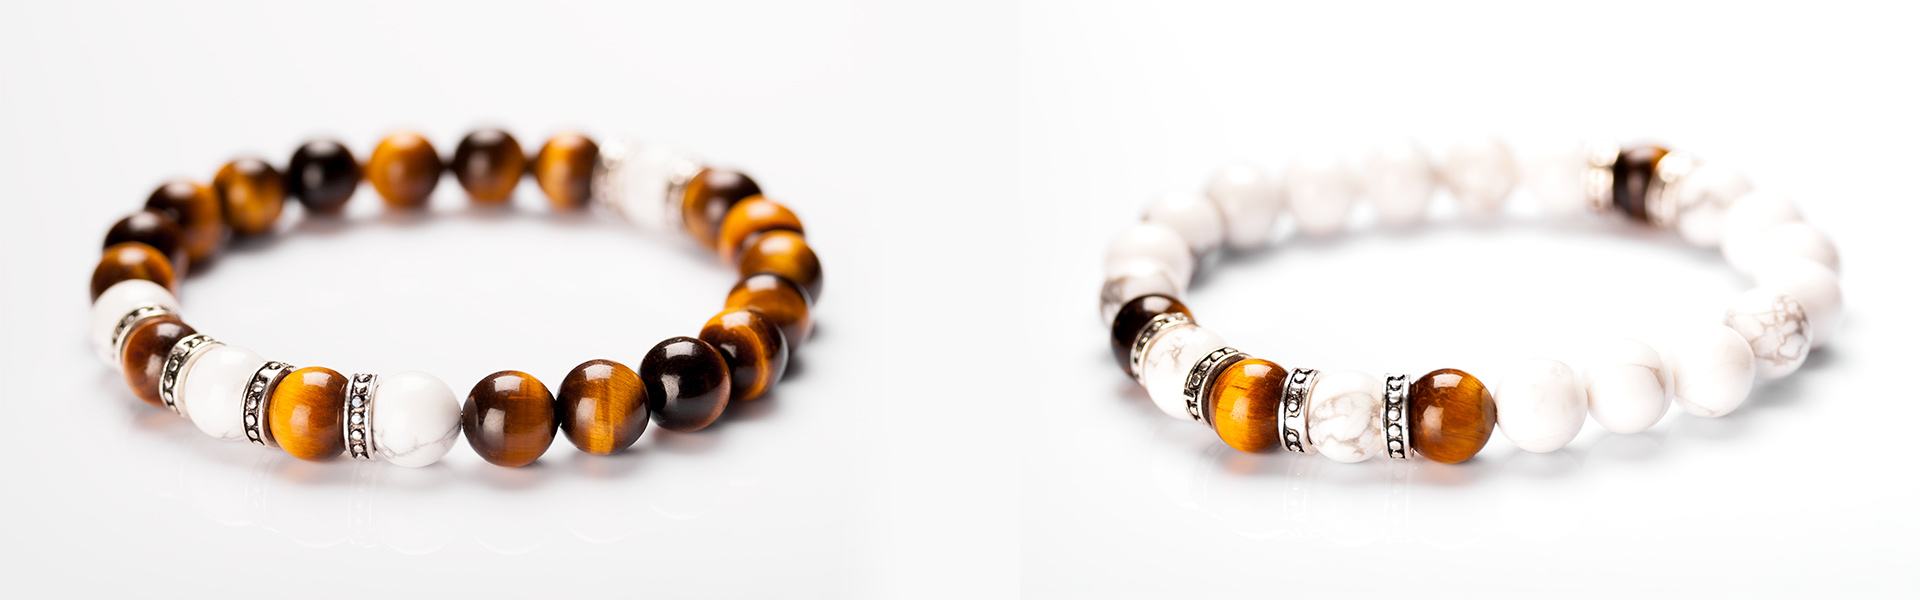 couples bracelets with tiger eye and jasper stones for men and ladies